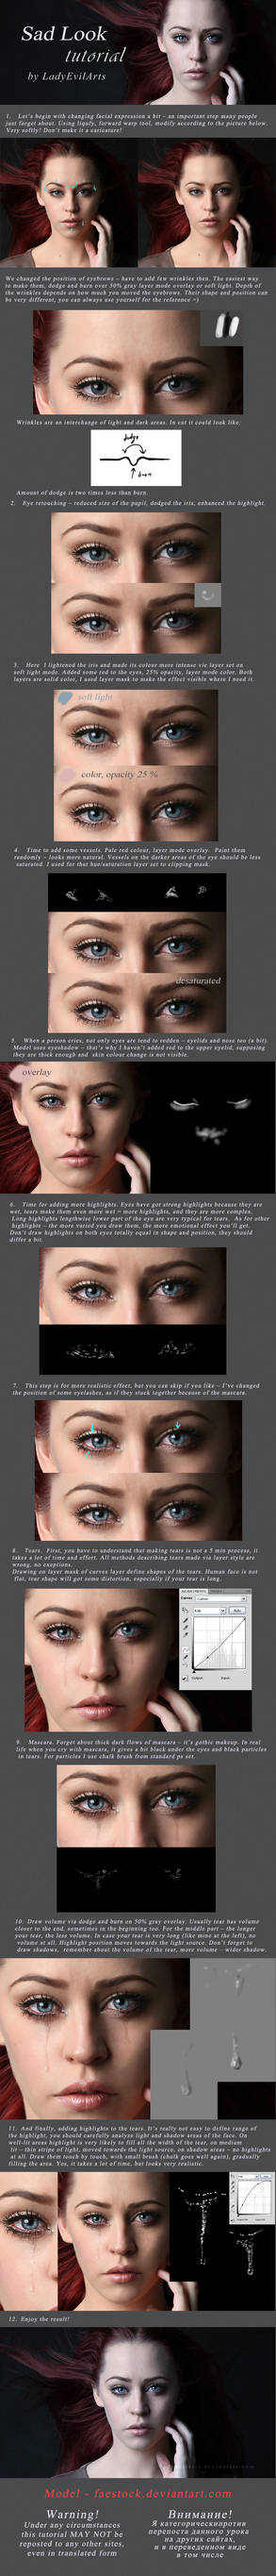 Sad Look Tutorial